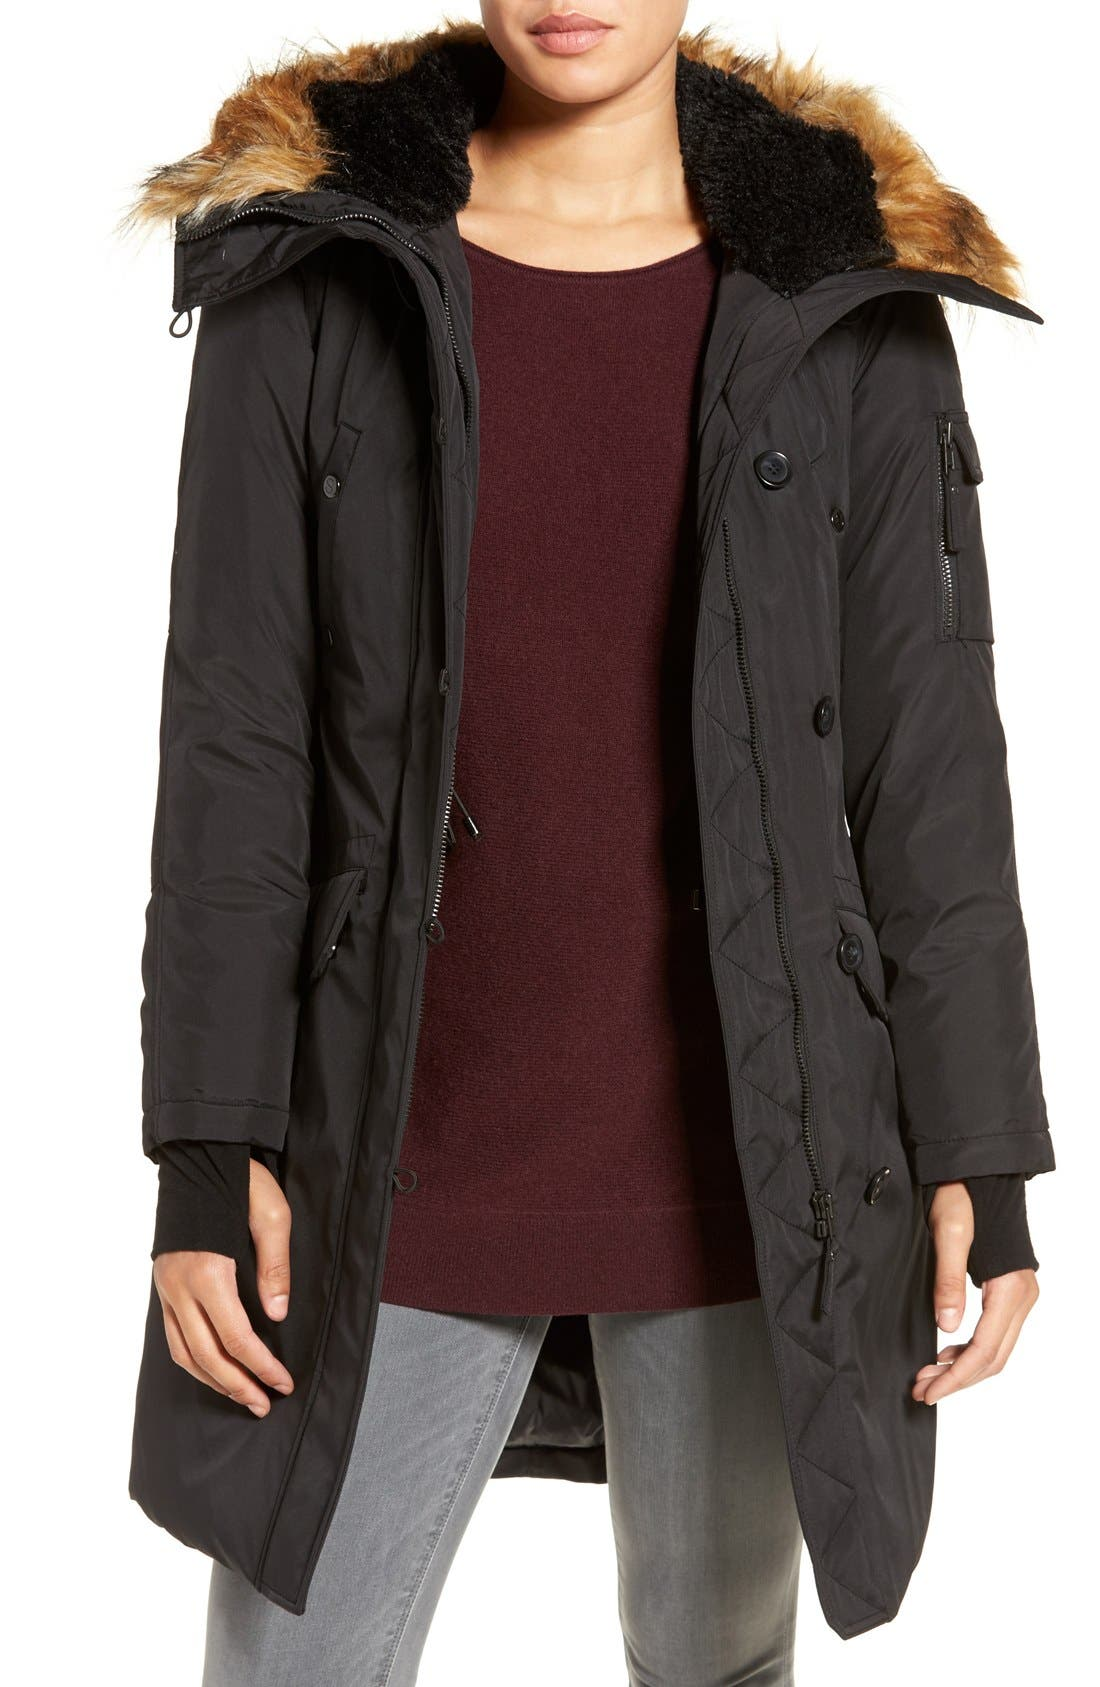 S13 'Alaska' Parka with Faux Fur Trim Hood,                         Main,                         color,